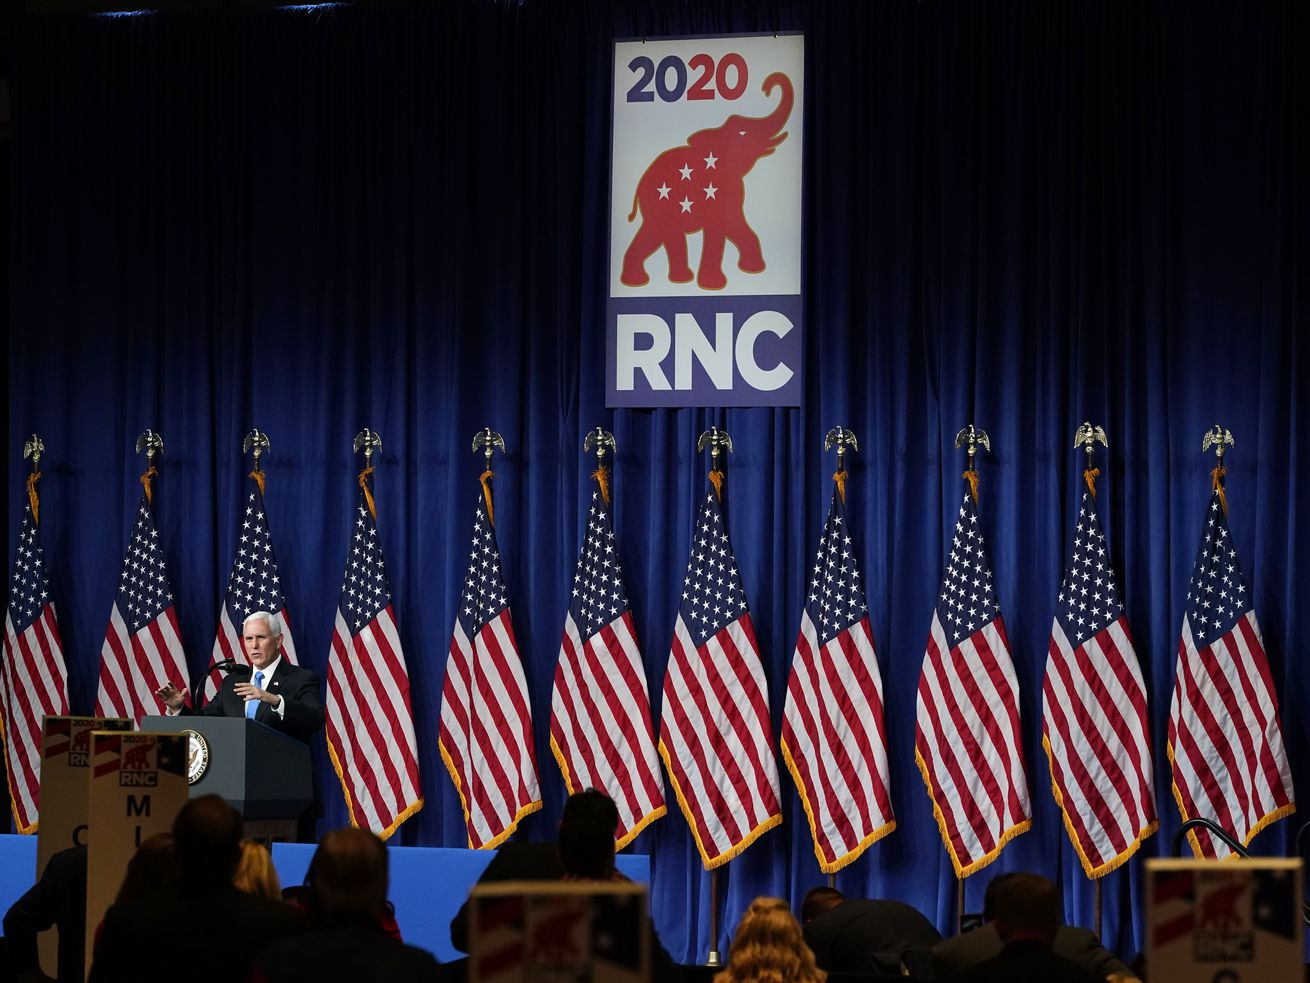 Watch the 2020 Republican National Convention live